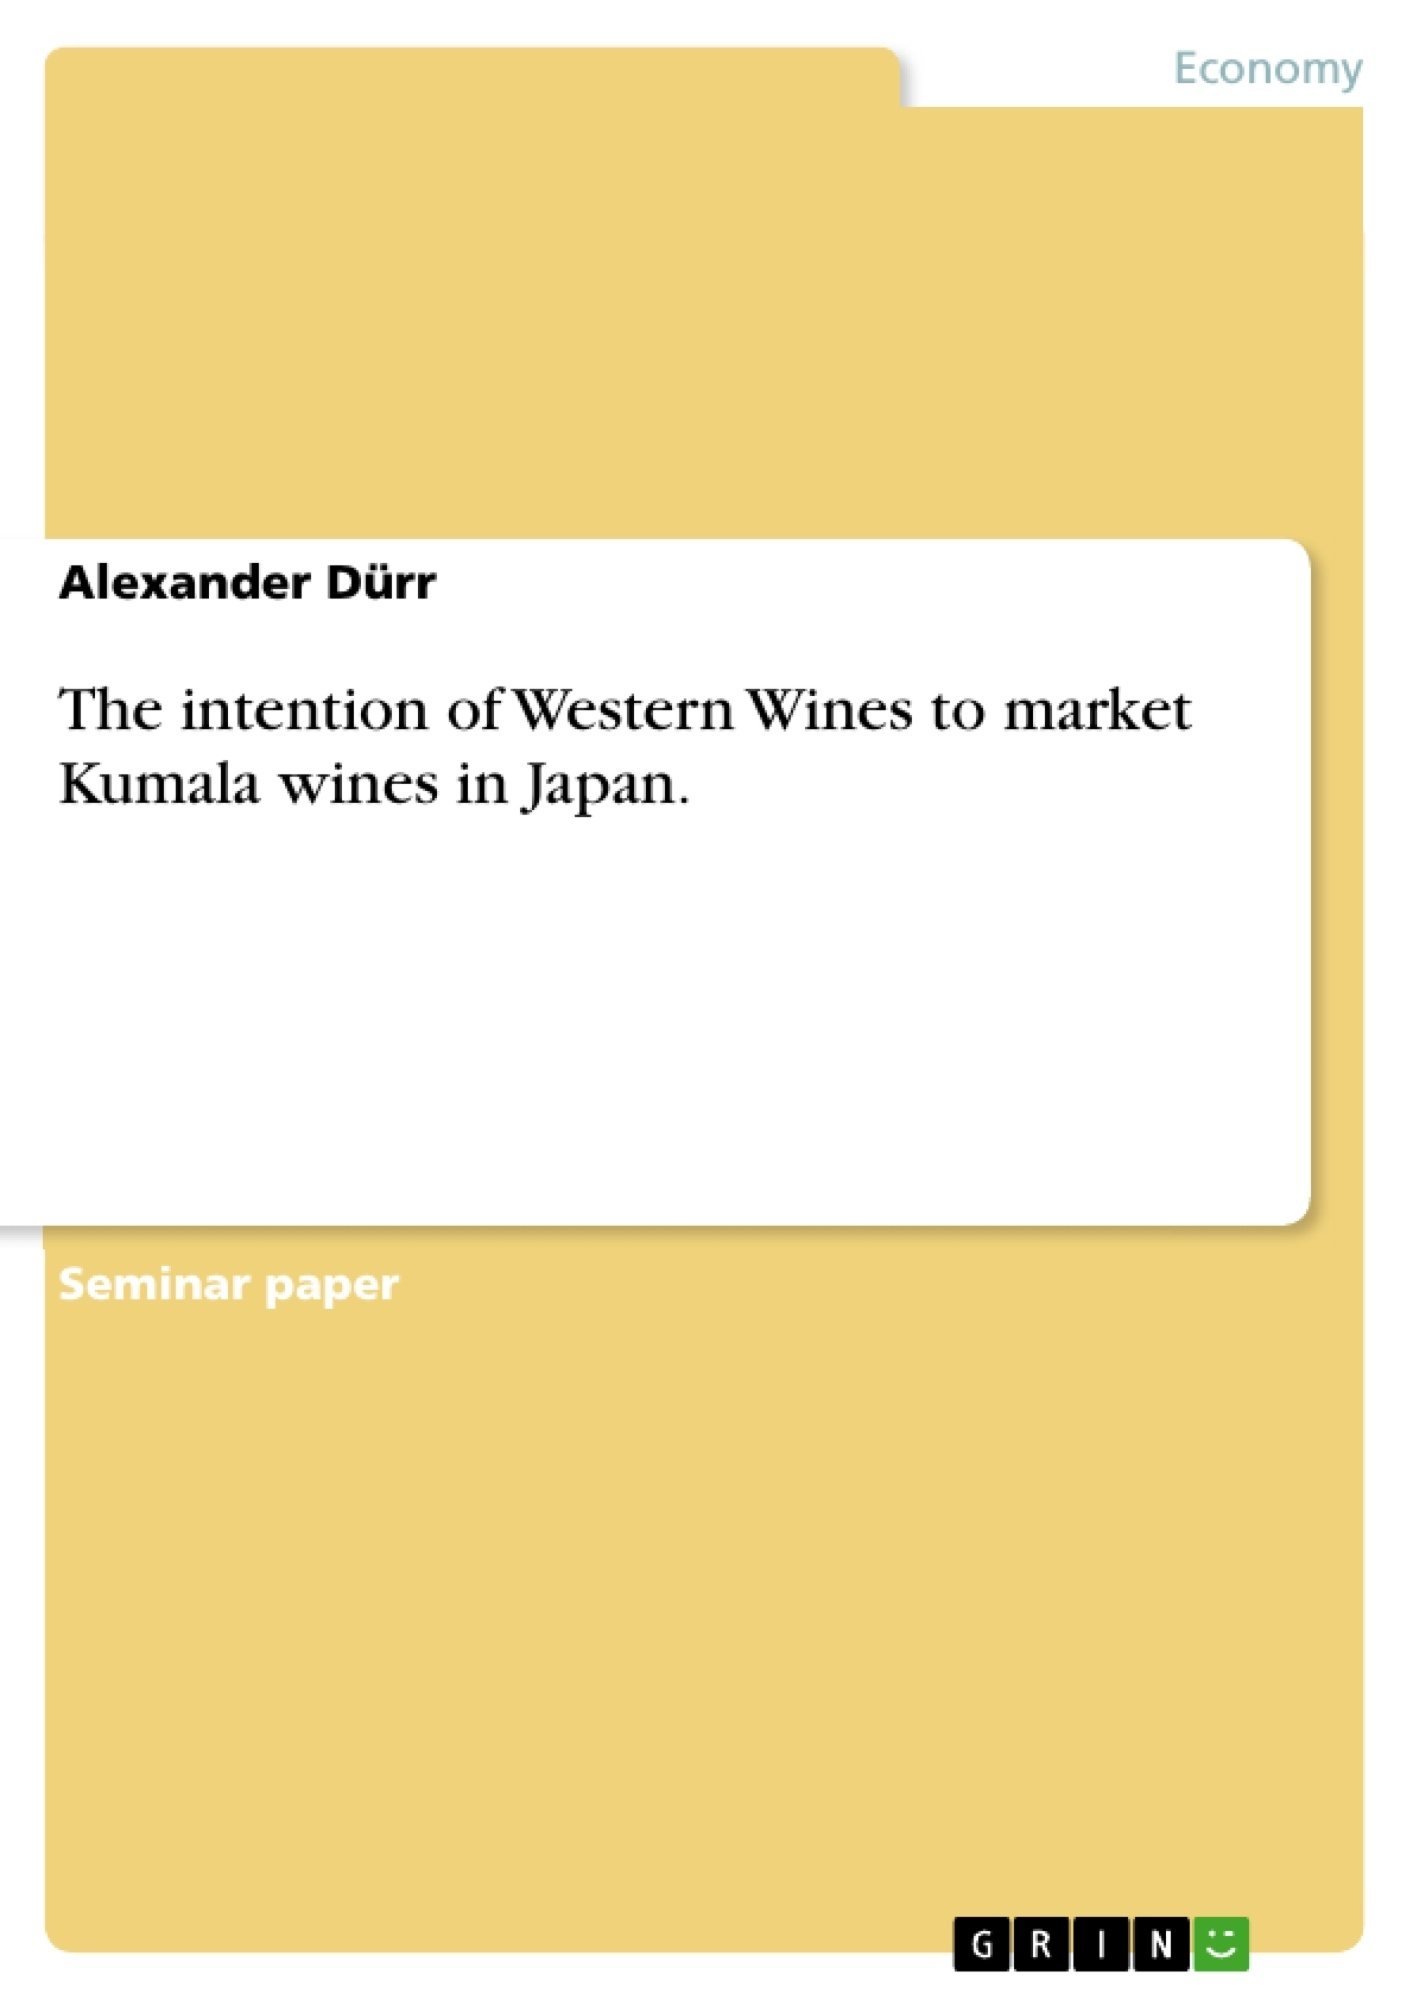 Title: The intention of Western Wines to market Kumala wines in Japan.